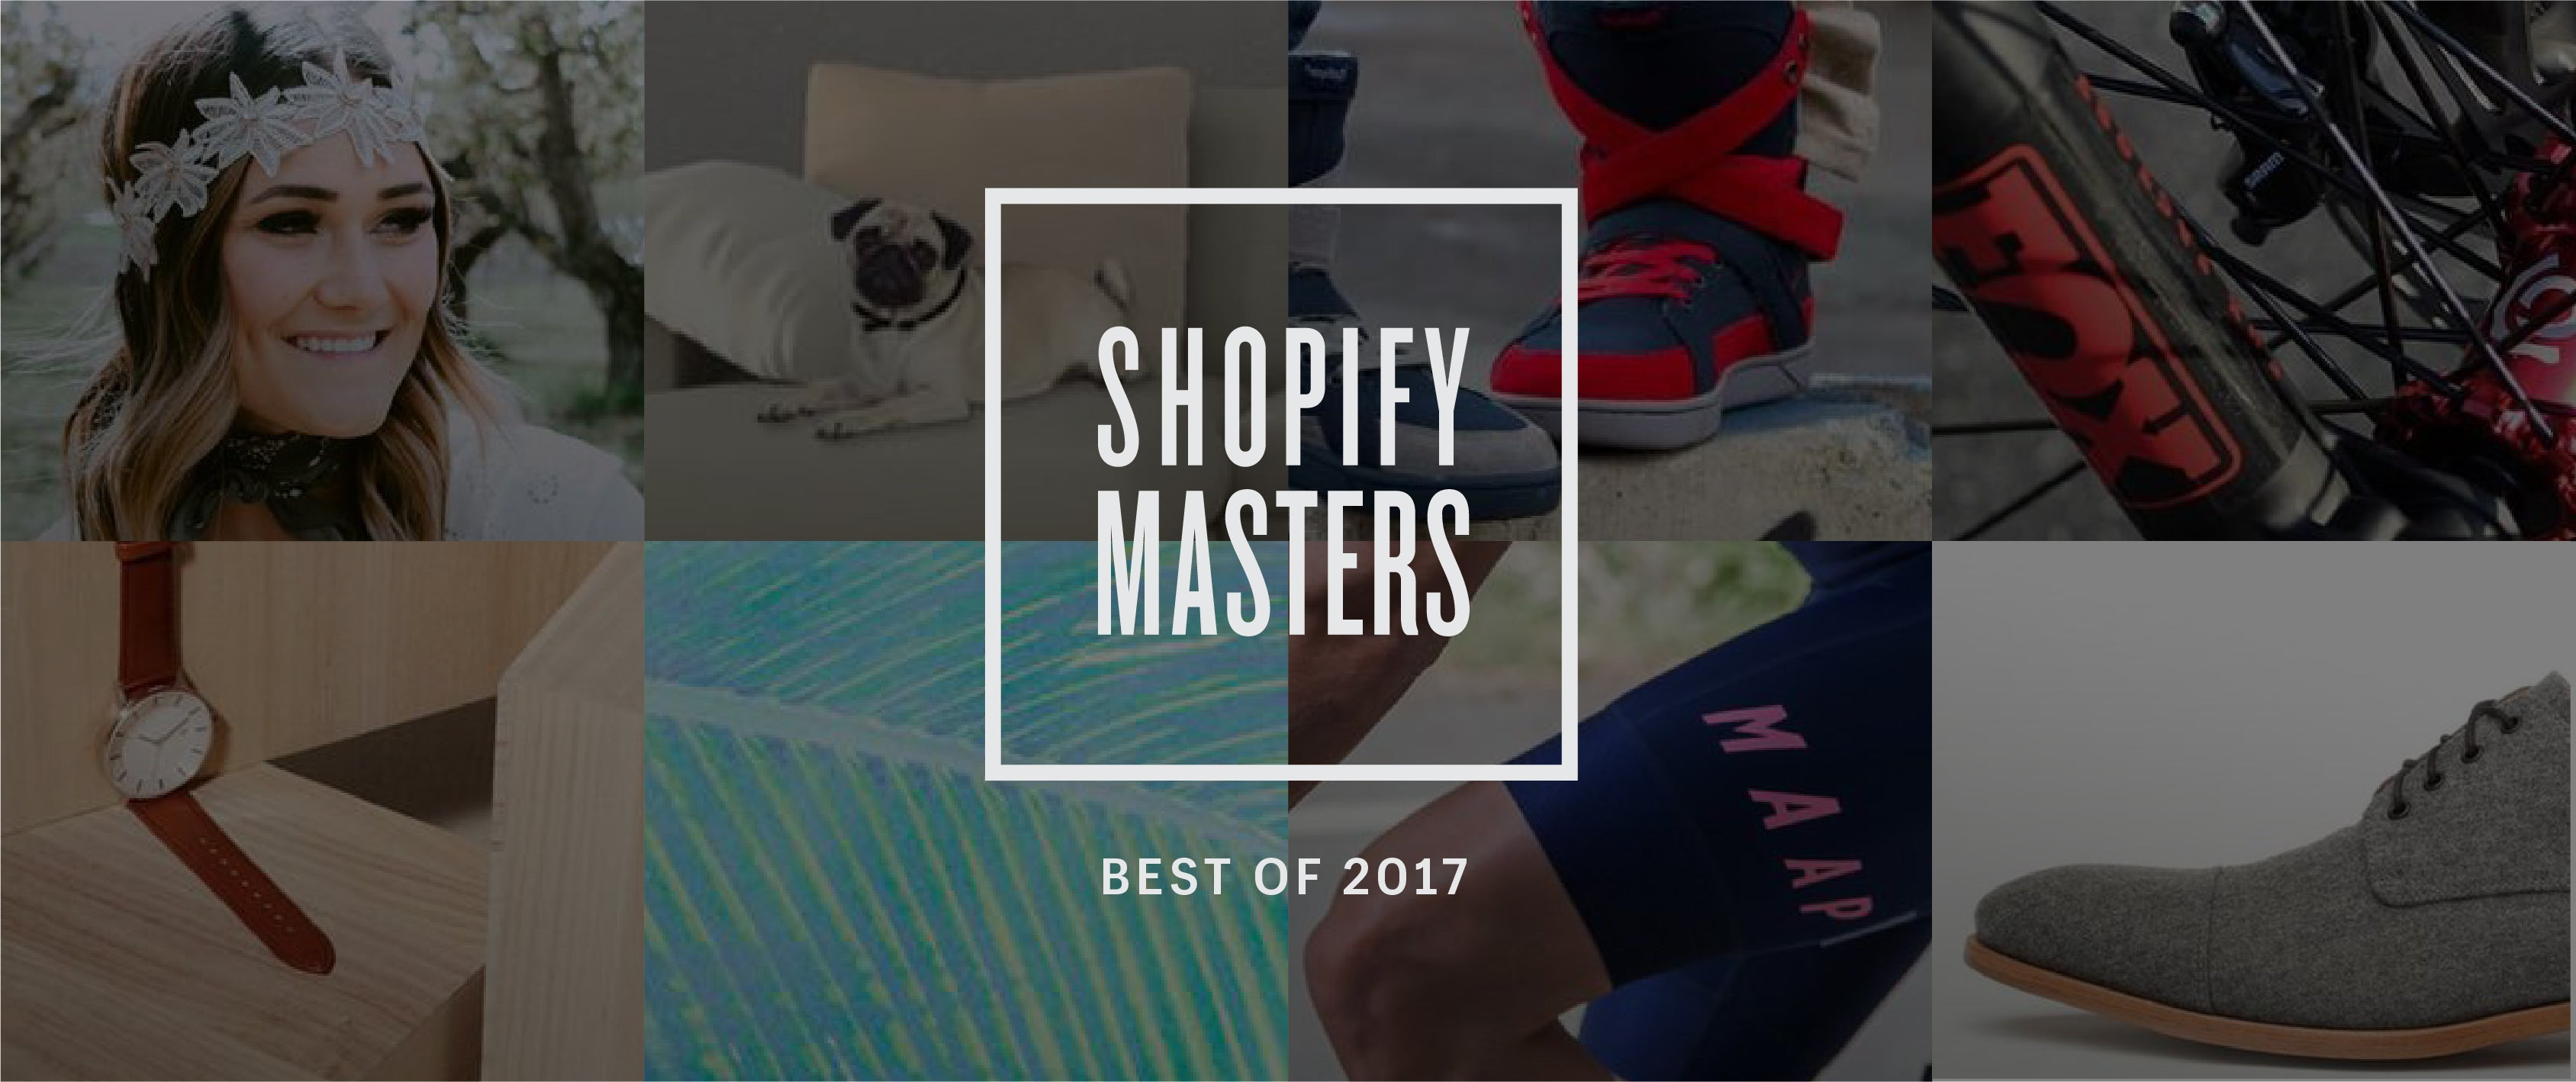 Shopify masters greatest hits 10 must listen episodes from 2017 malvernweather Choice Image